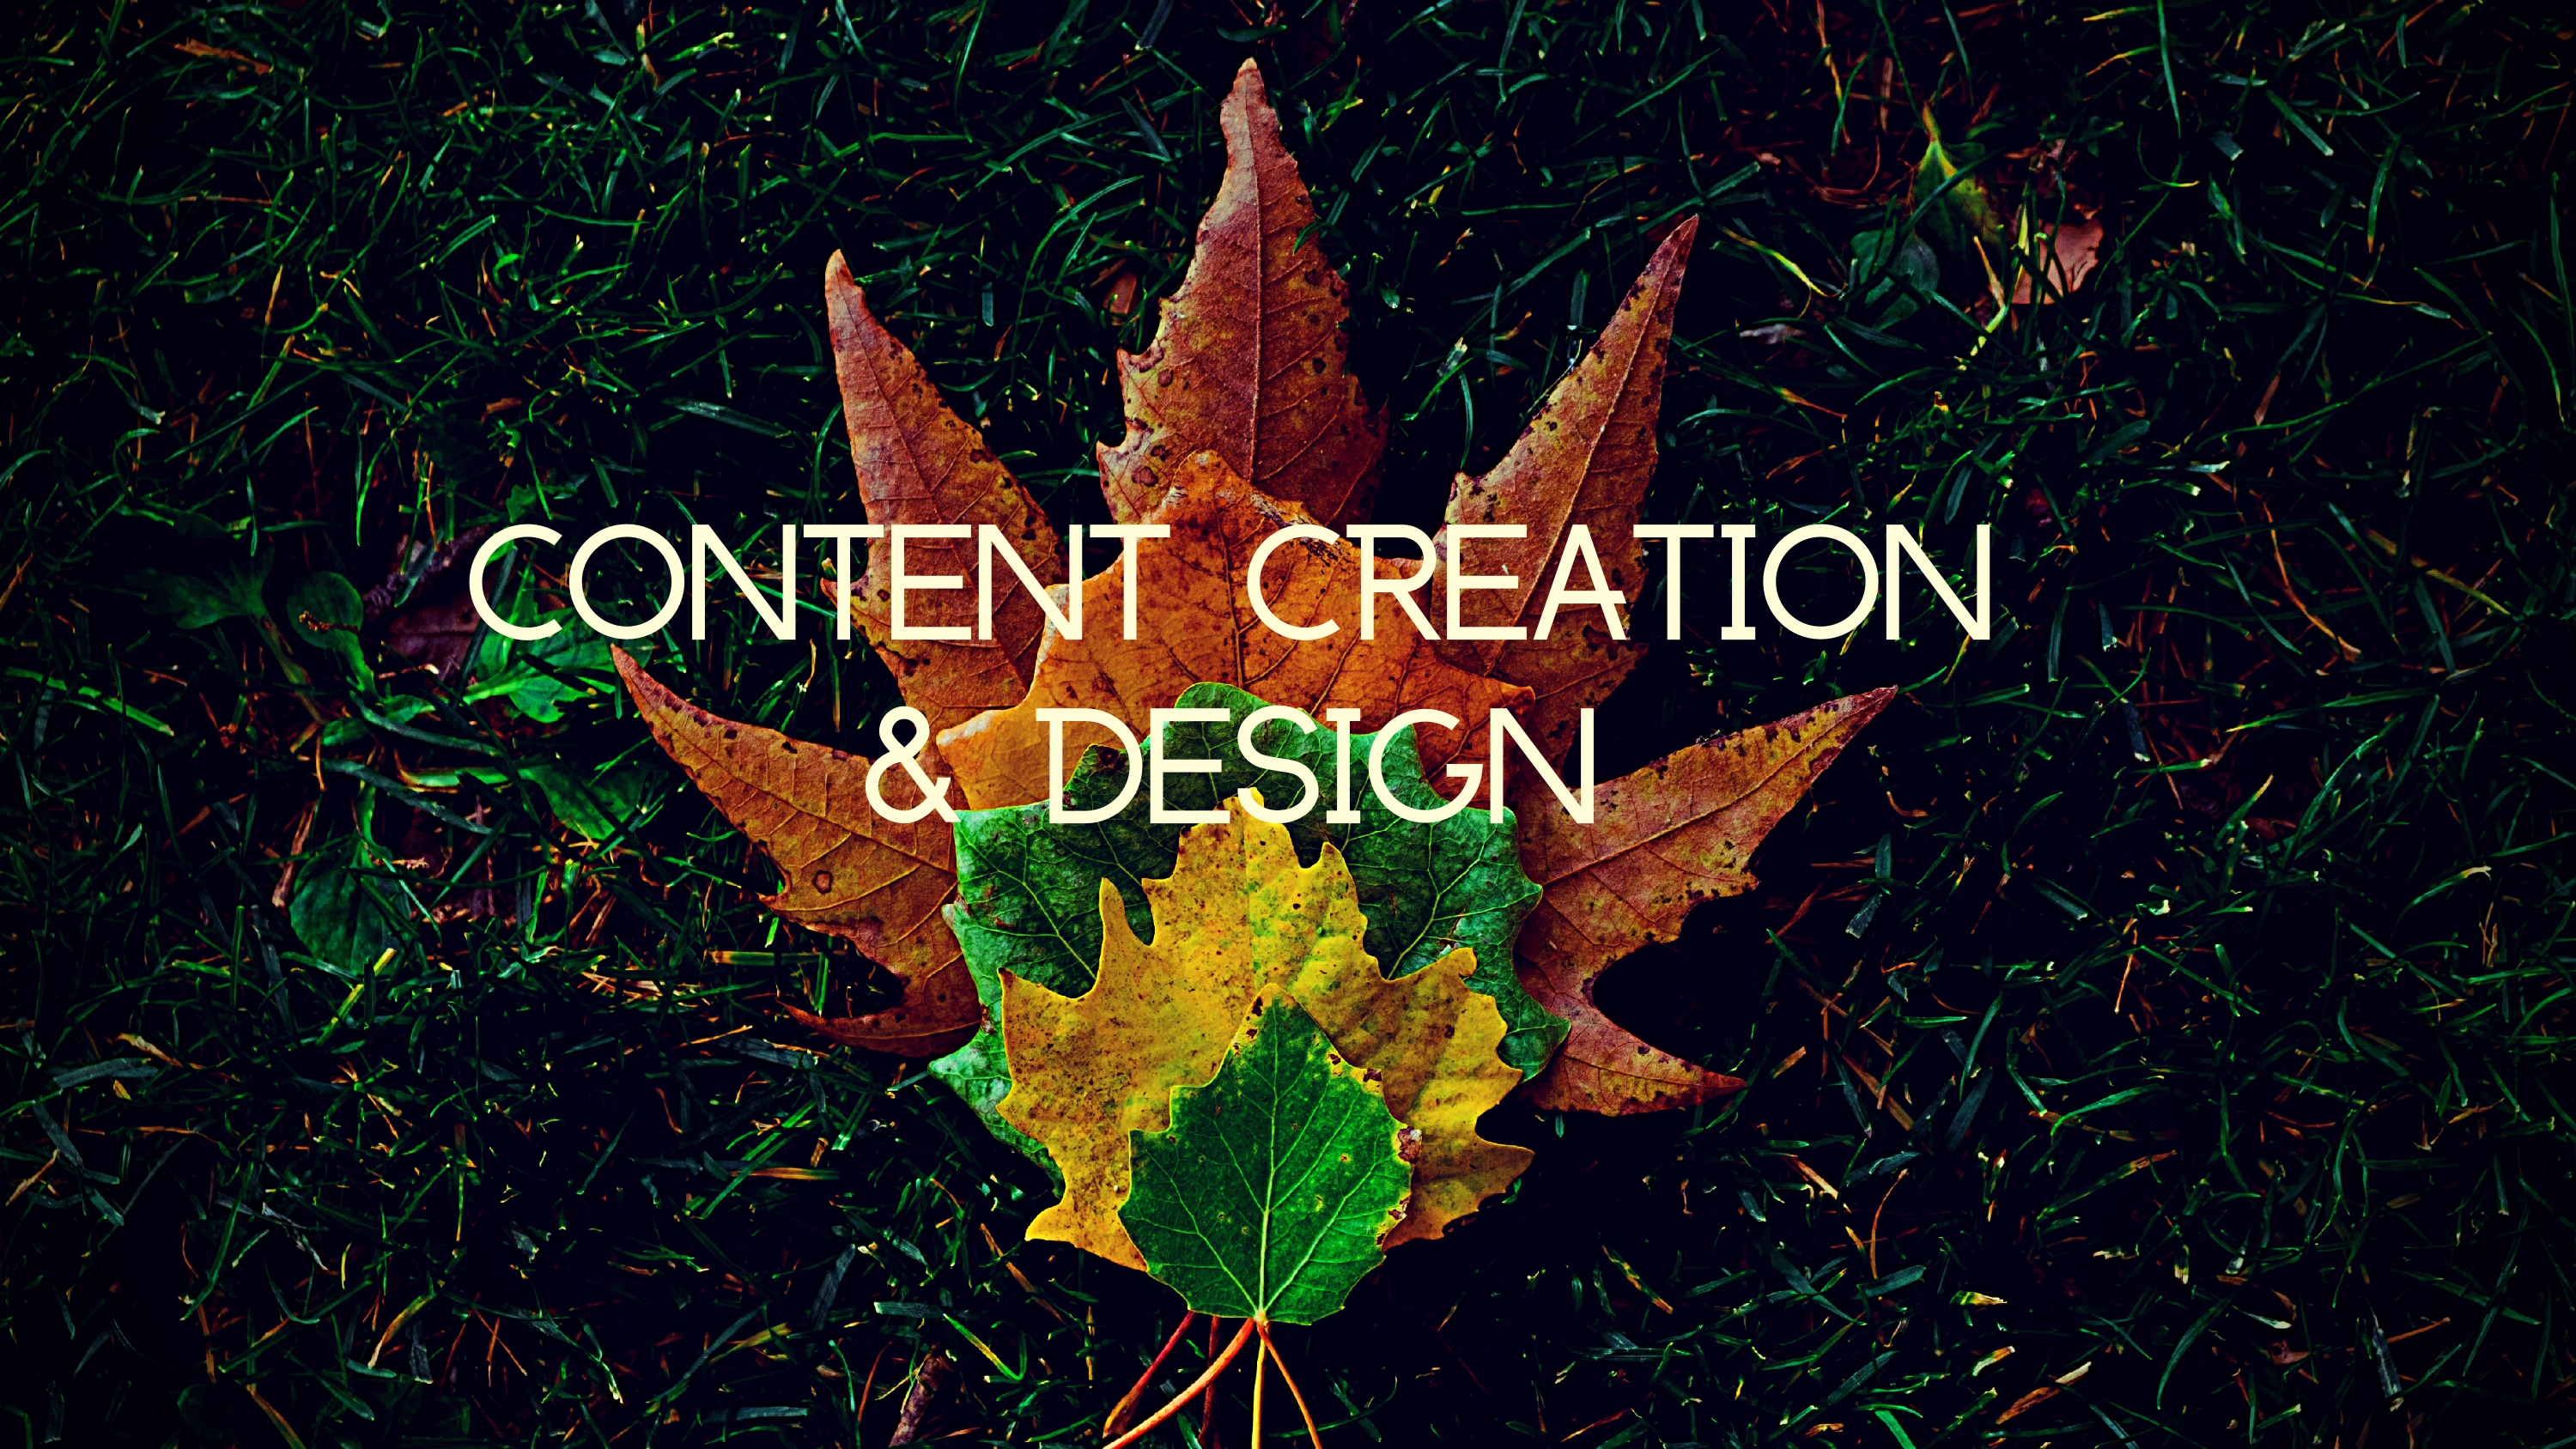 Content Creation & Design